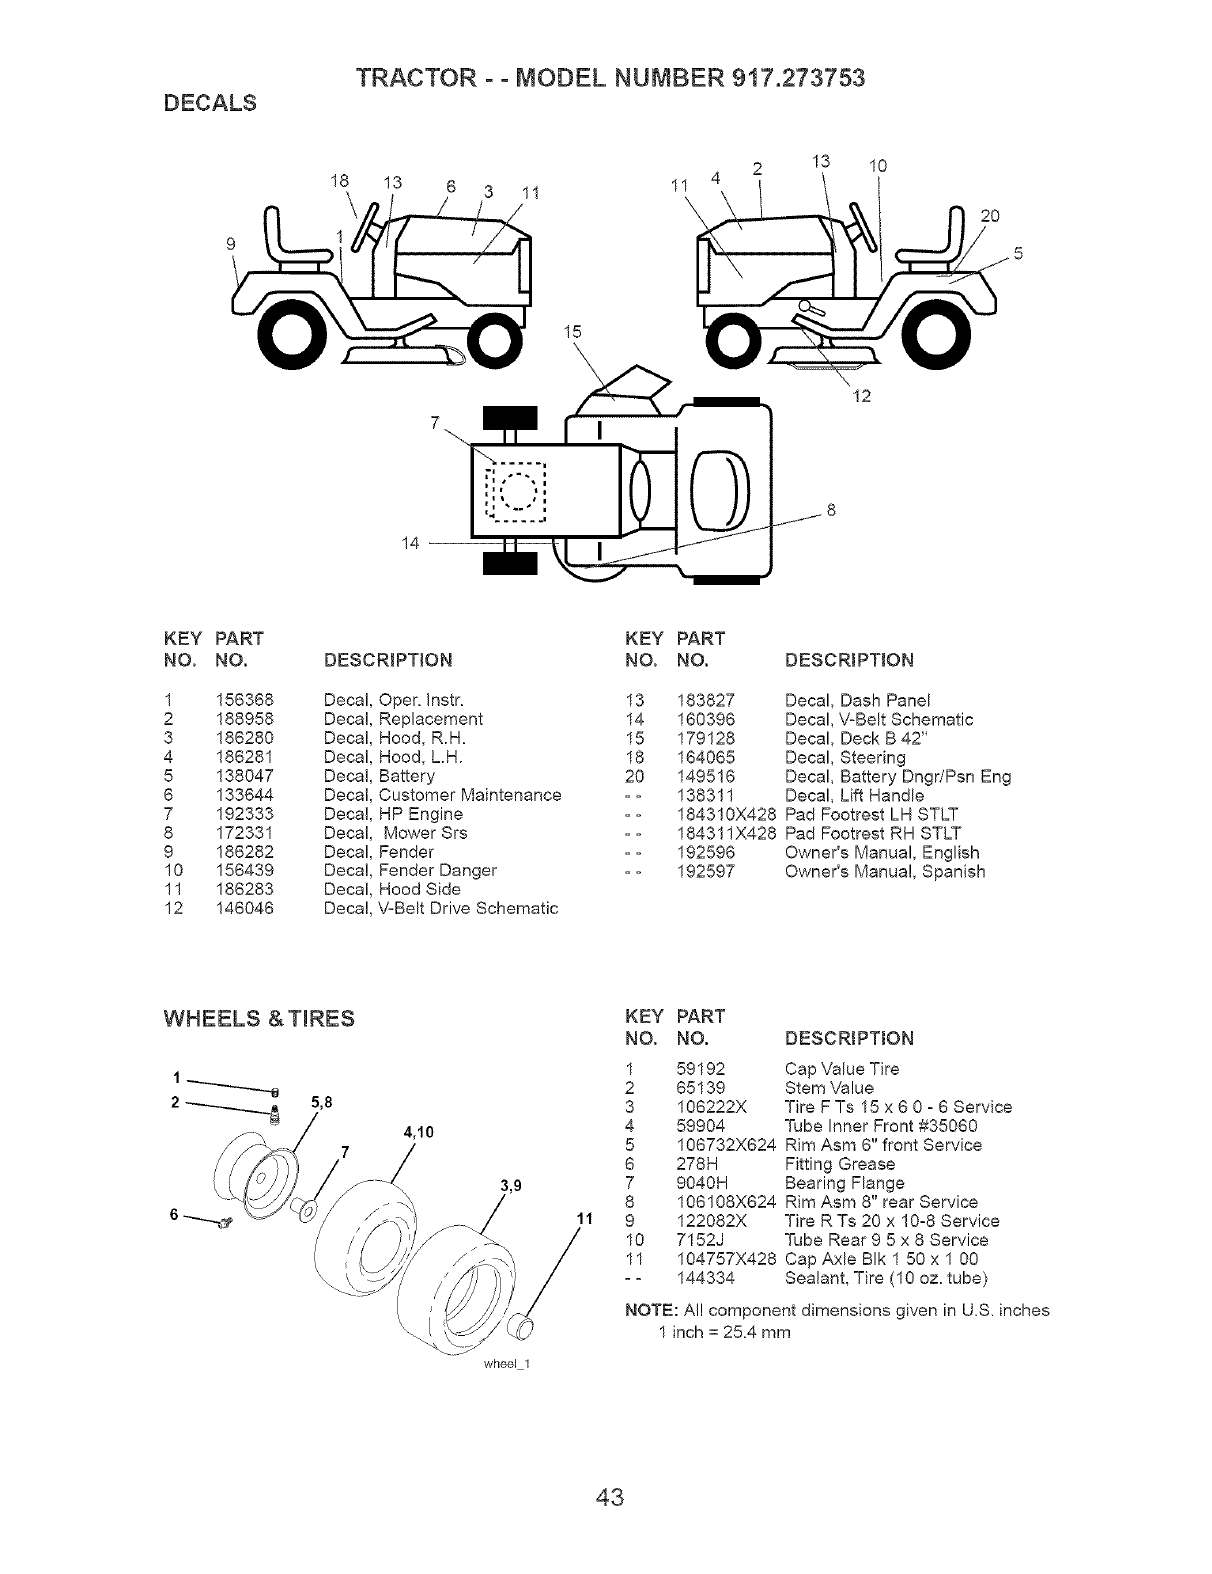 Craftsman 917273753 User Manual LAWN TRACTOR Manuals And